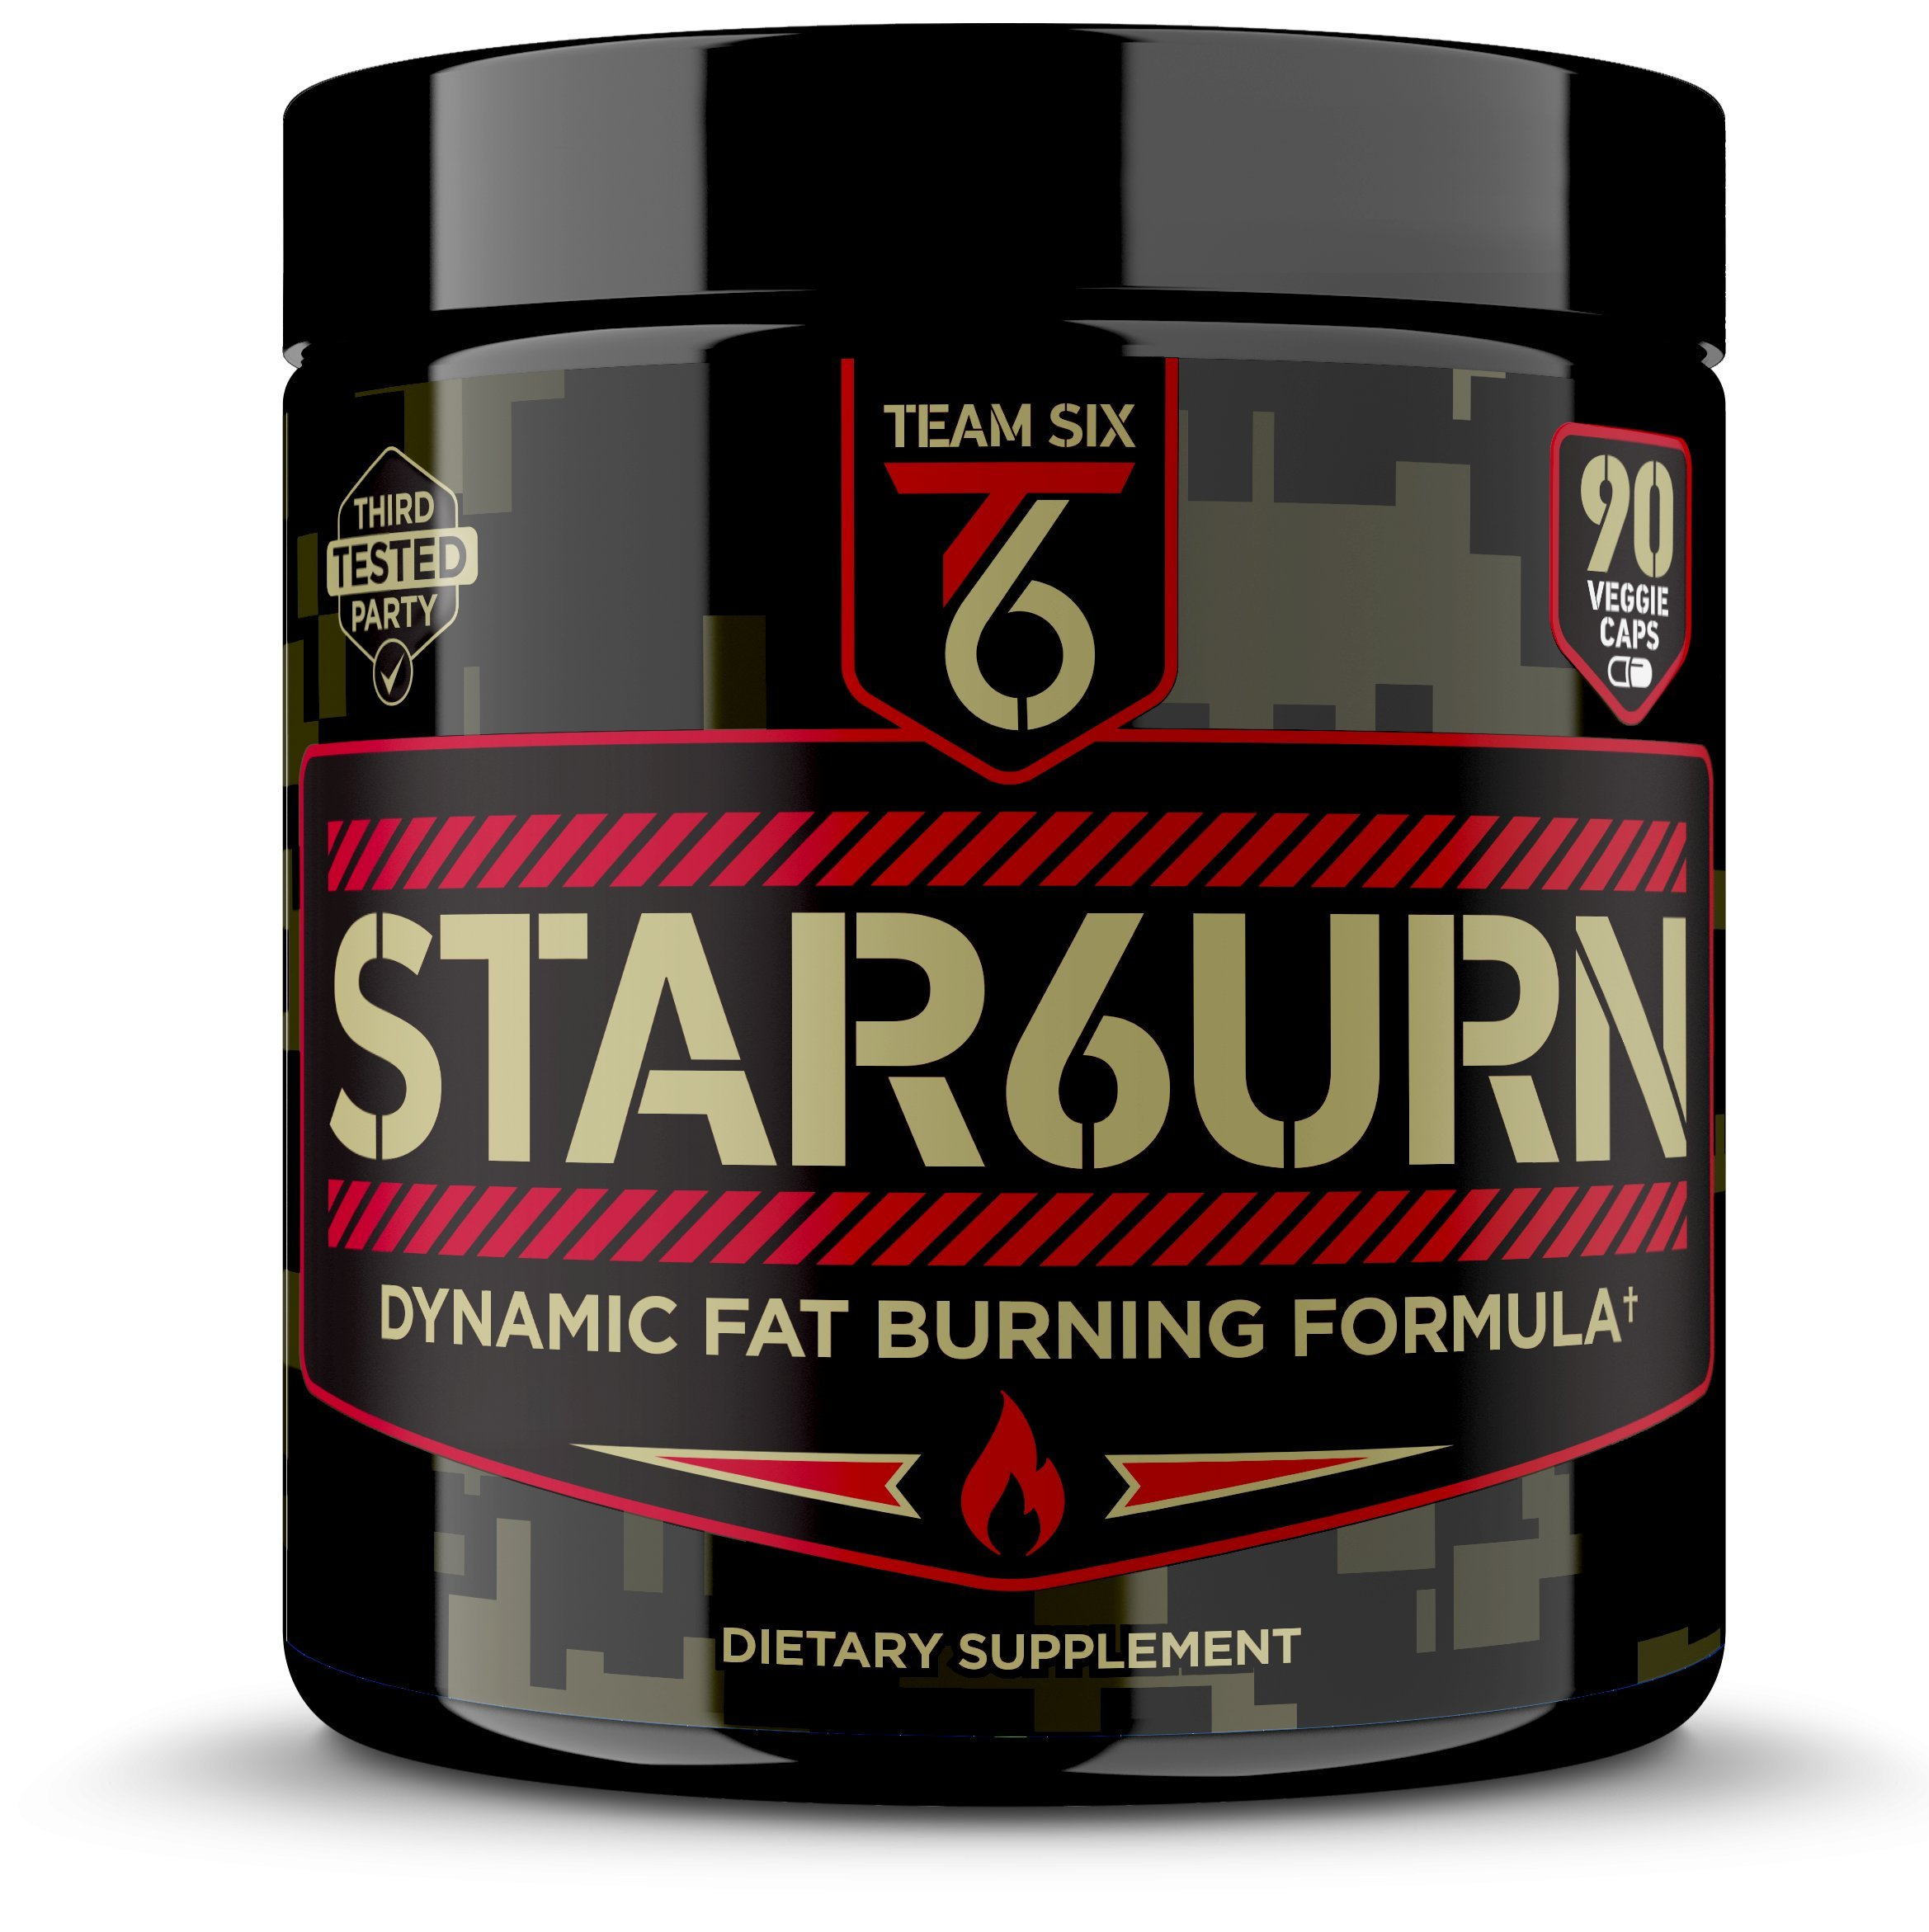 T6 STAR6URN - Thermogenic Fat Burner, Weight Loss Pills for Men and Women with Chromium, Pure Forskolin and 7 More Shredding Diet Ingredients - Appetite Suppressant, 30 Day Supply by Team Six Supplements